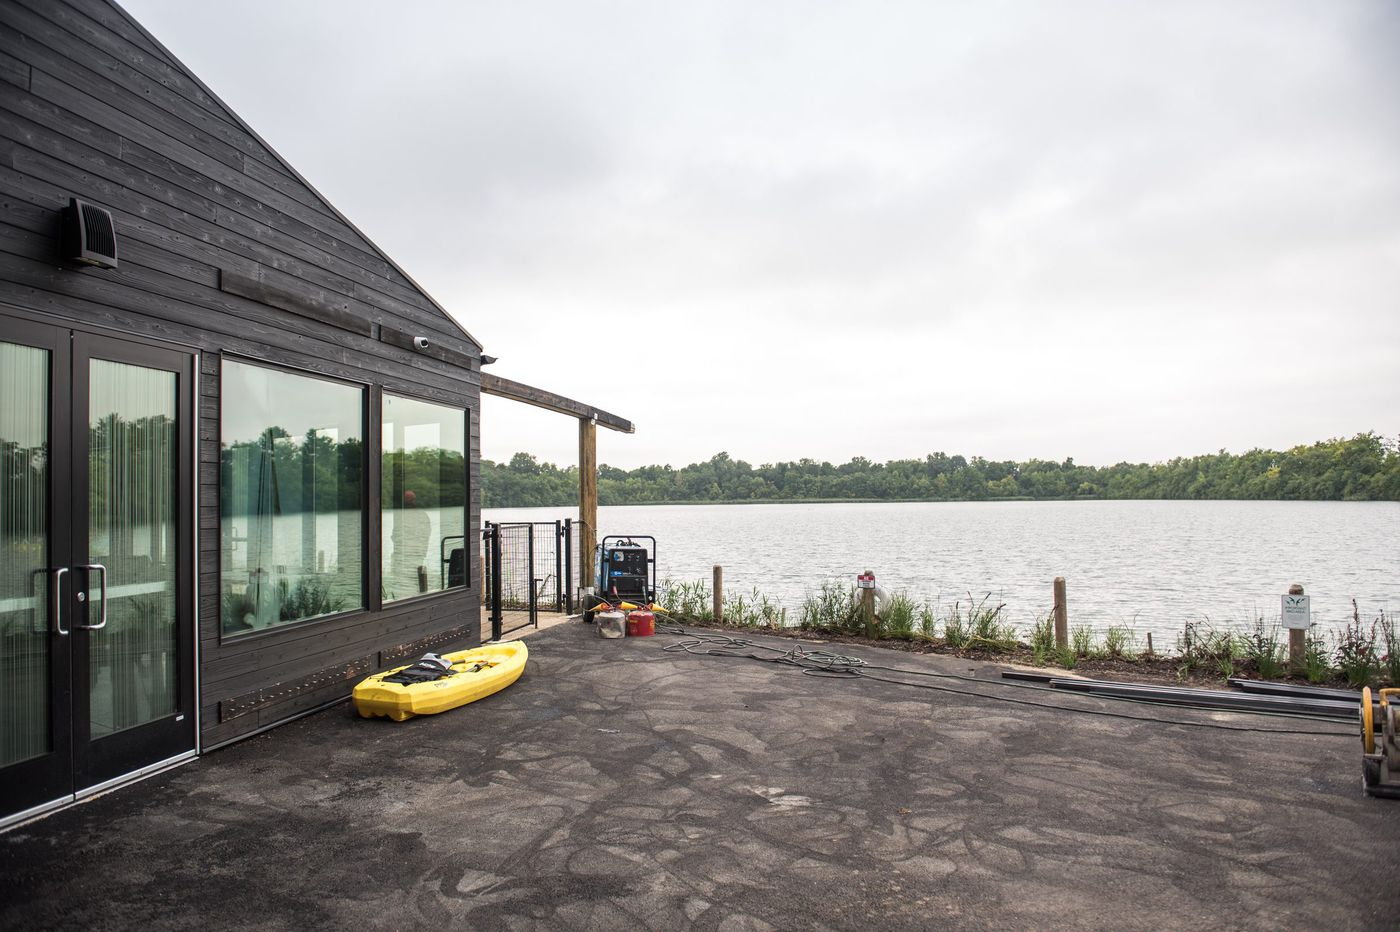 All-new Discovery Center brings a nature trail, exhibits, zip lines, and more to Fairmount Park reservoir